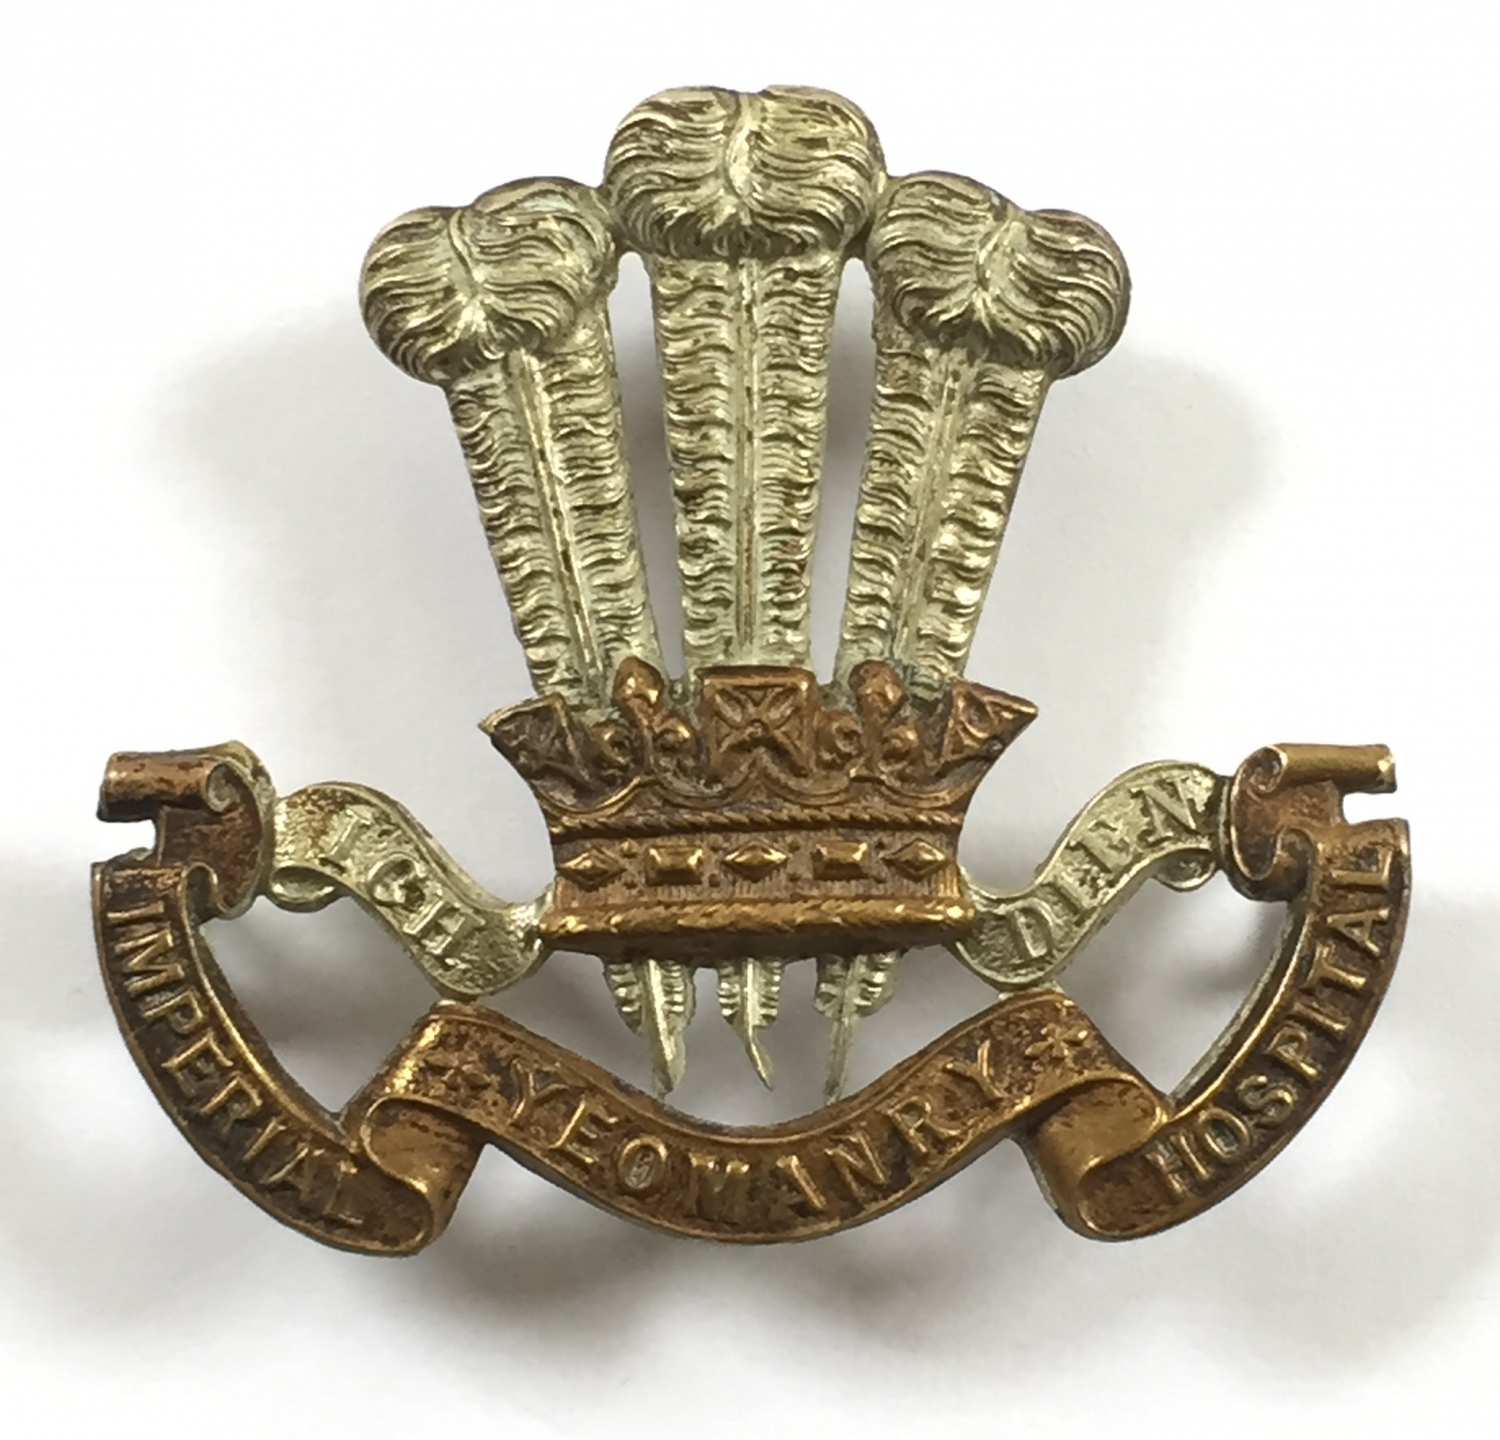 Imperial Yeomanry Hospital cap badge